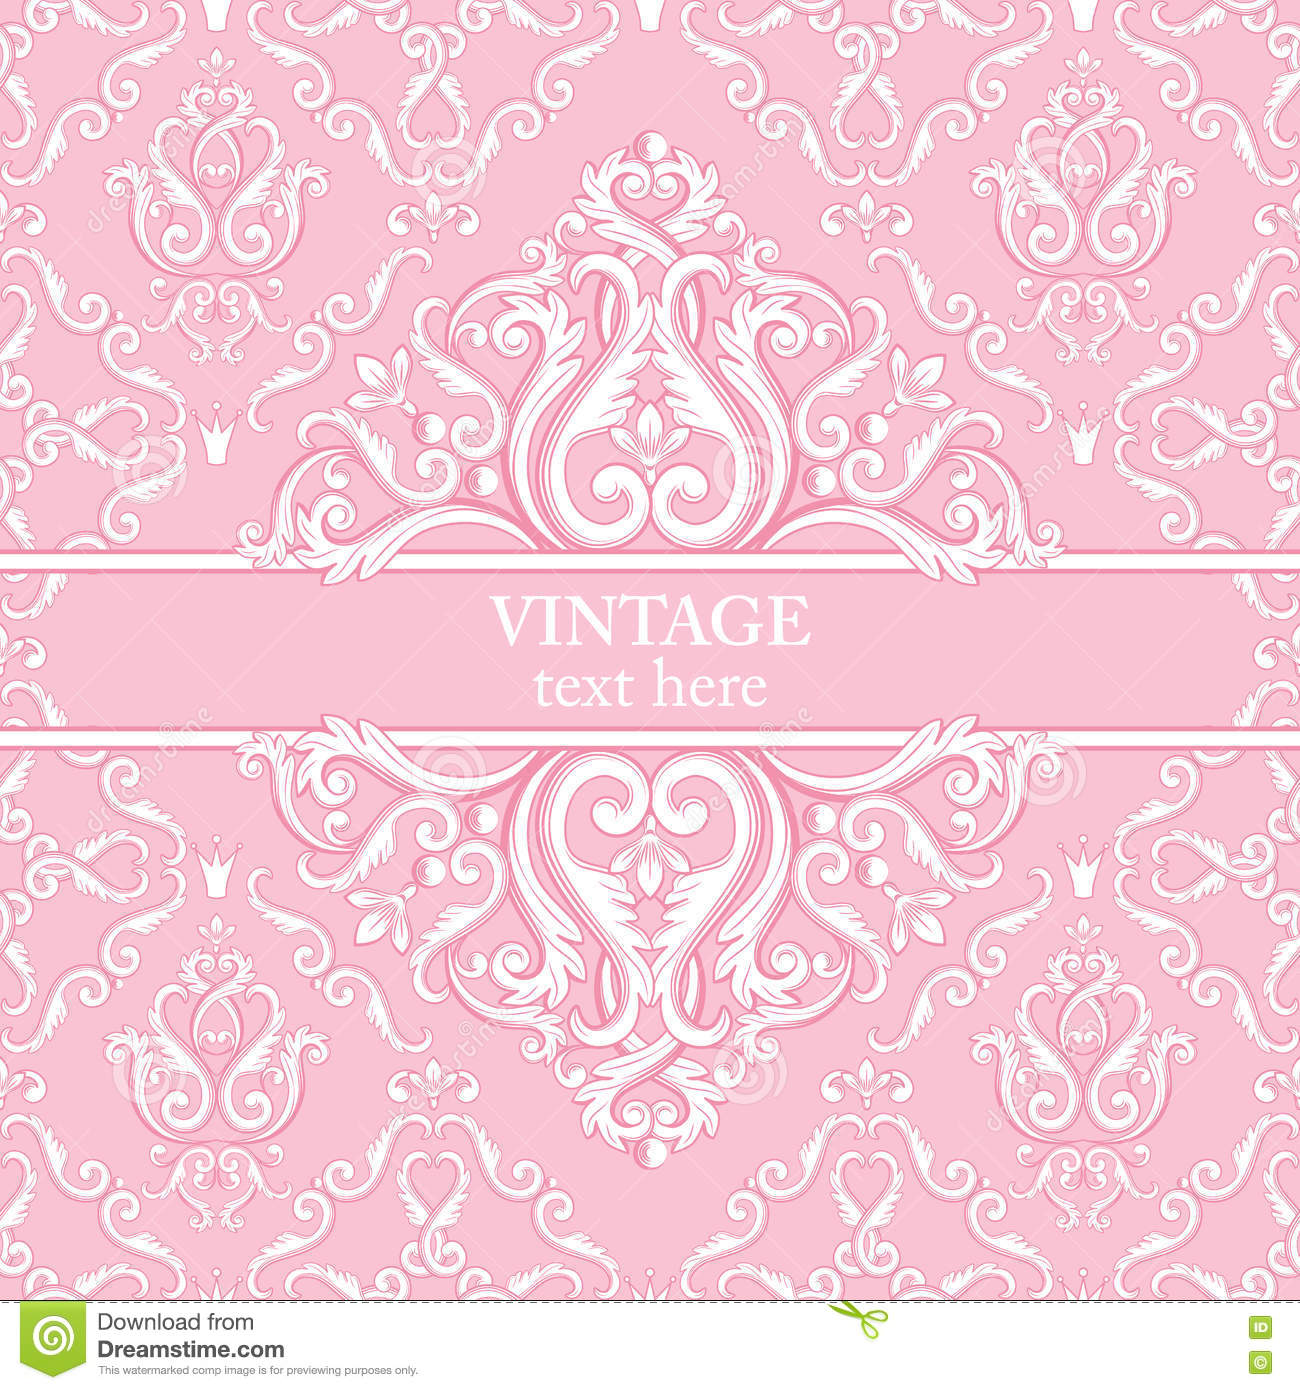 royal pink background - photo #8